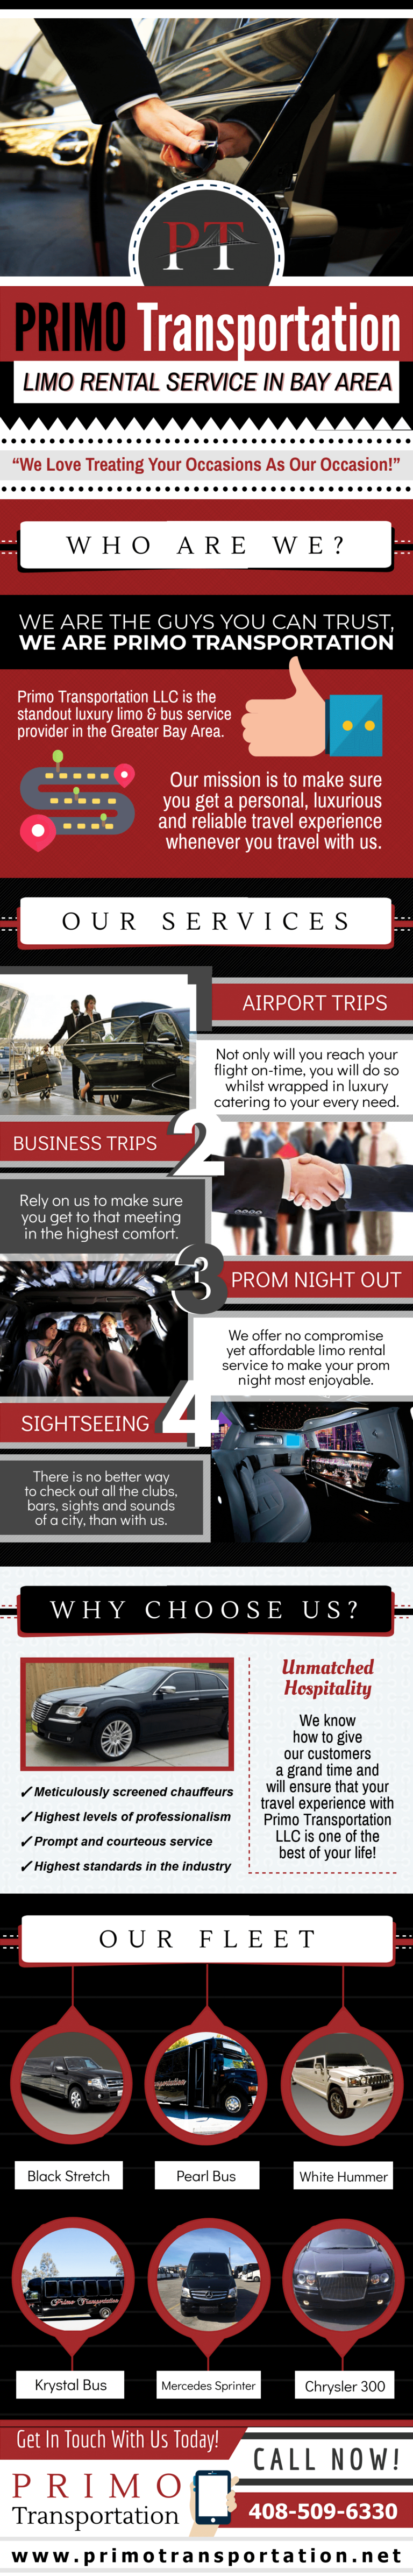 Primo Transportation - Limo Rental Service In Bay Area